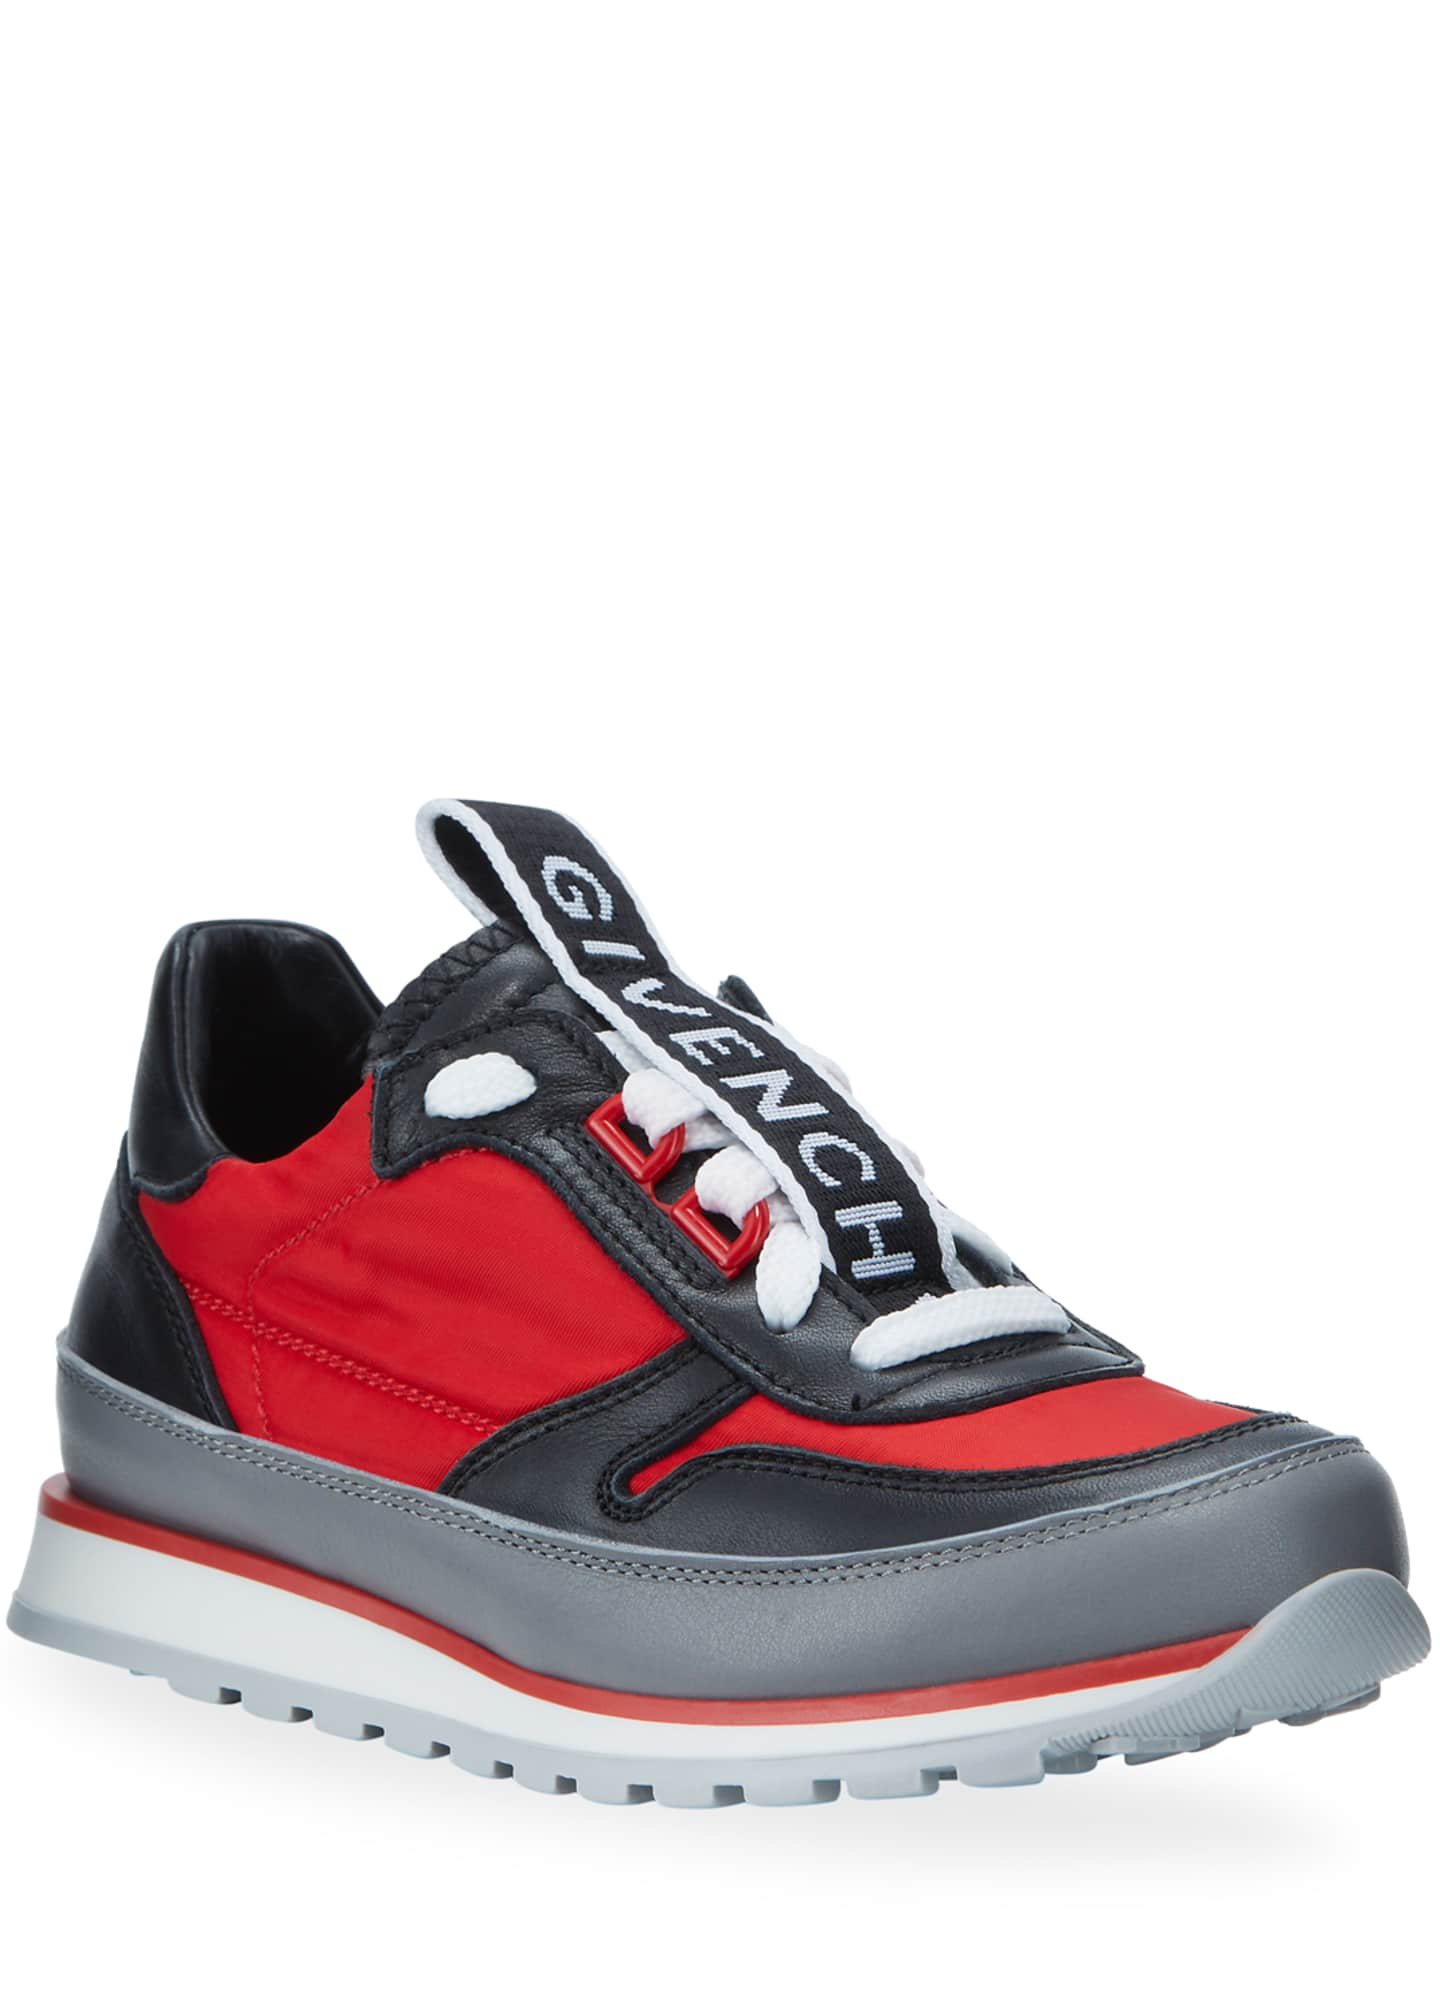 Givenchy Boy's Colorblock Mixed Materials Logo Sneakers,